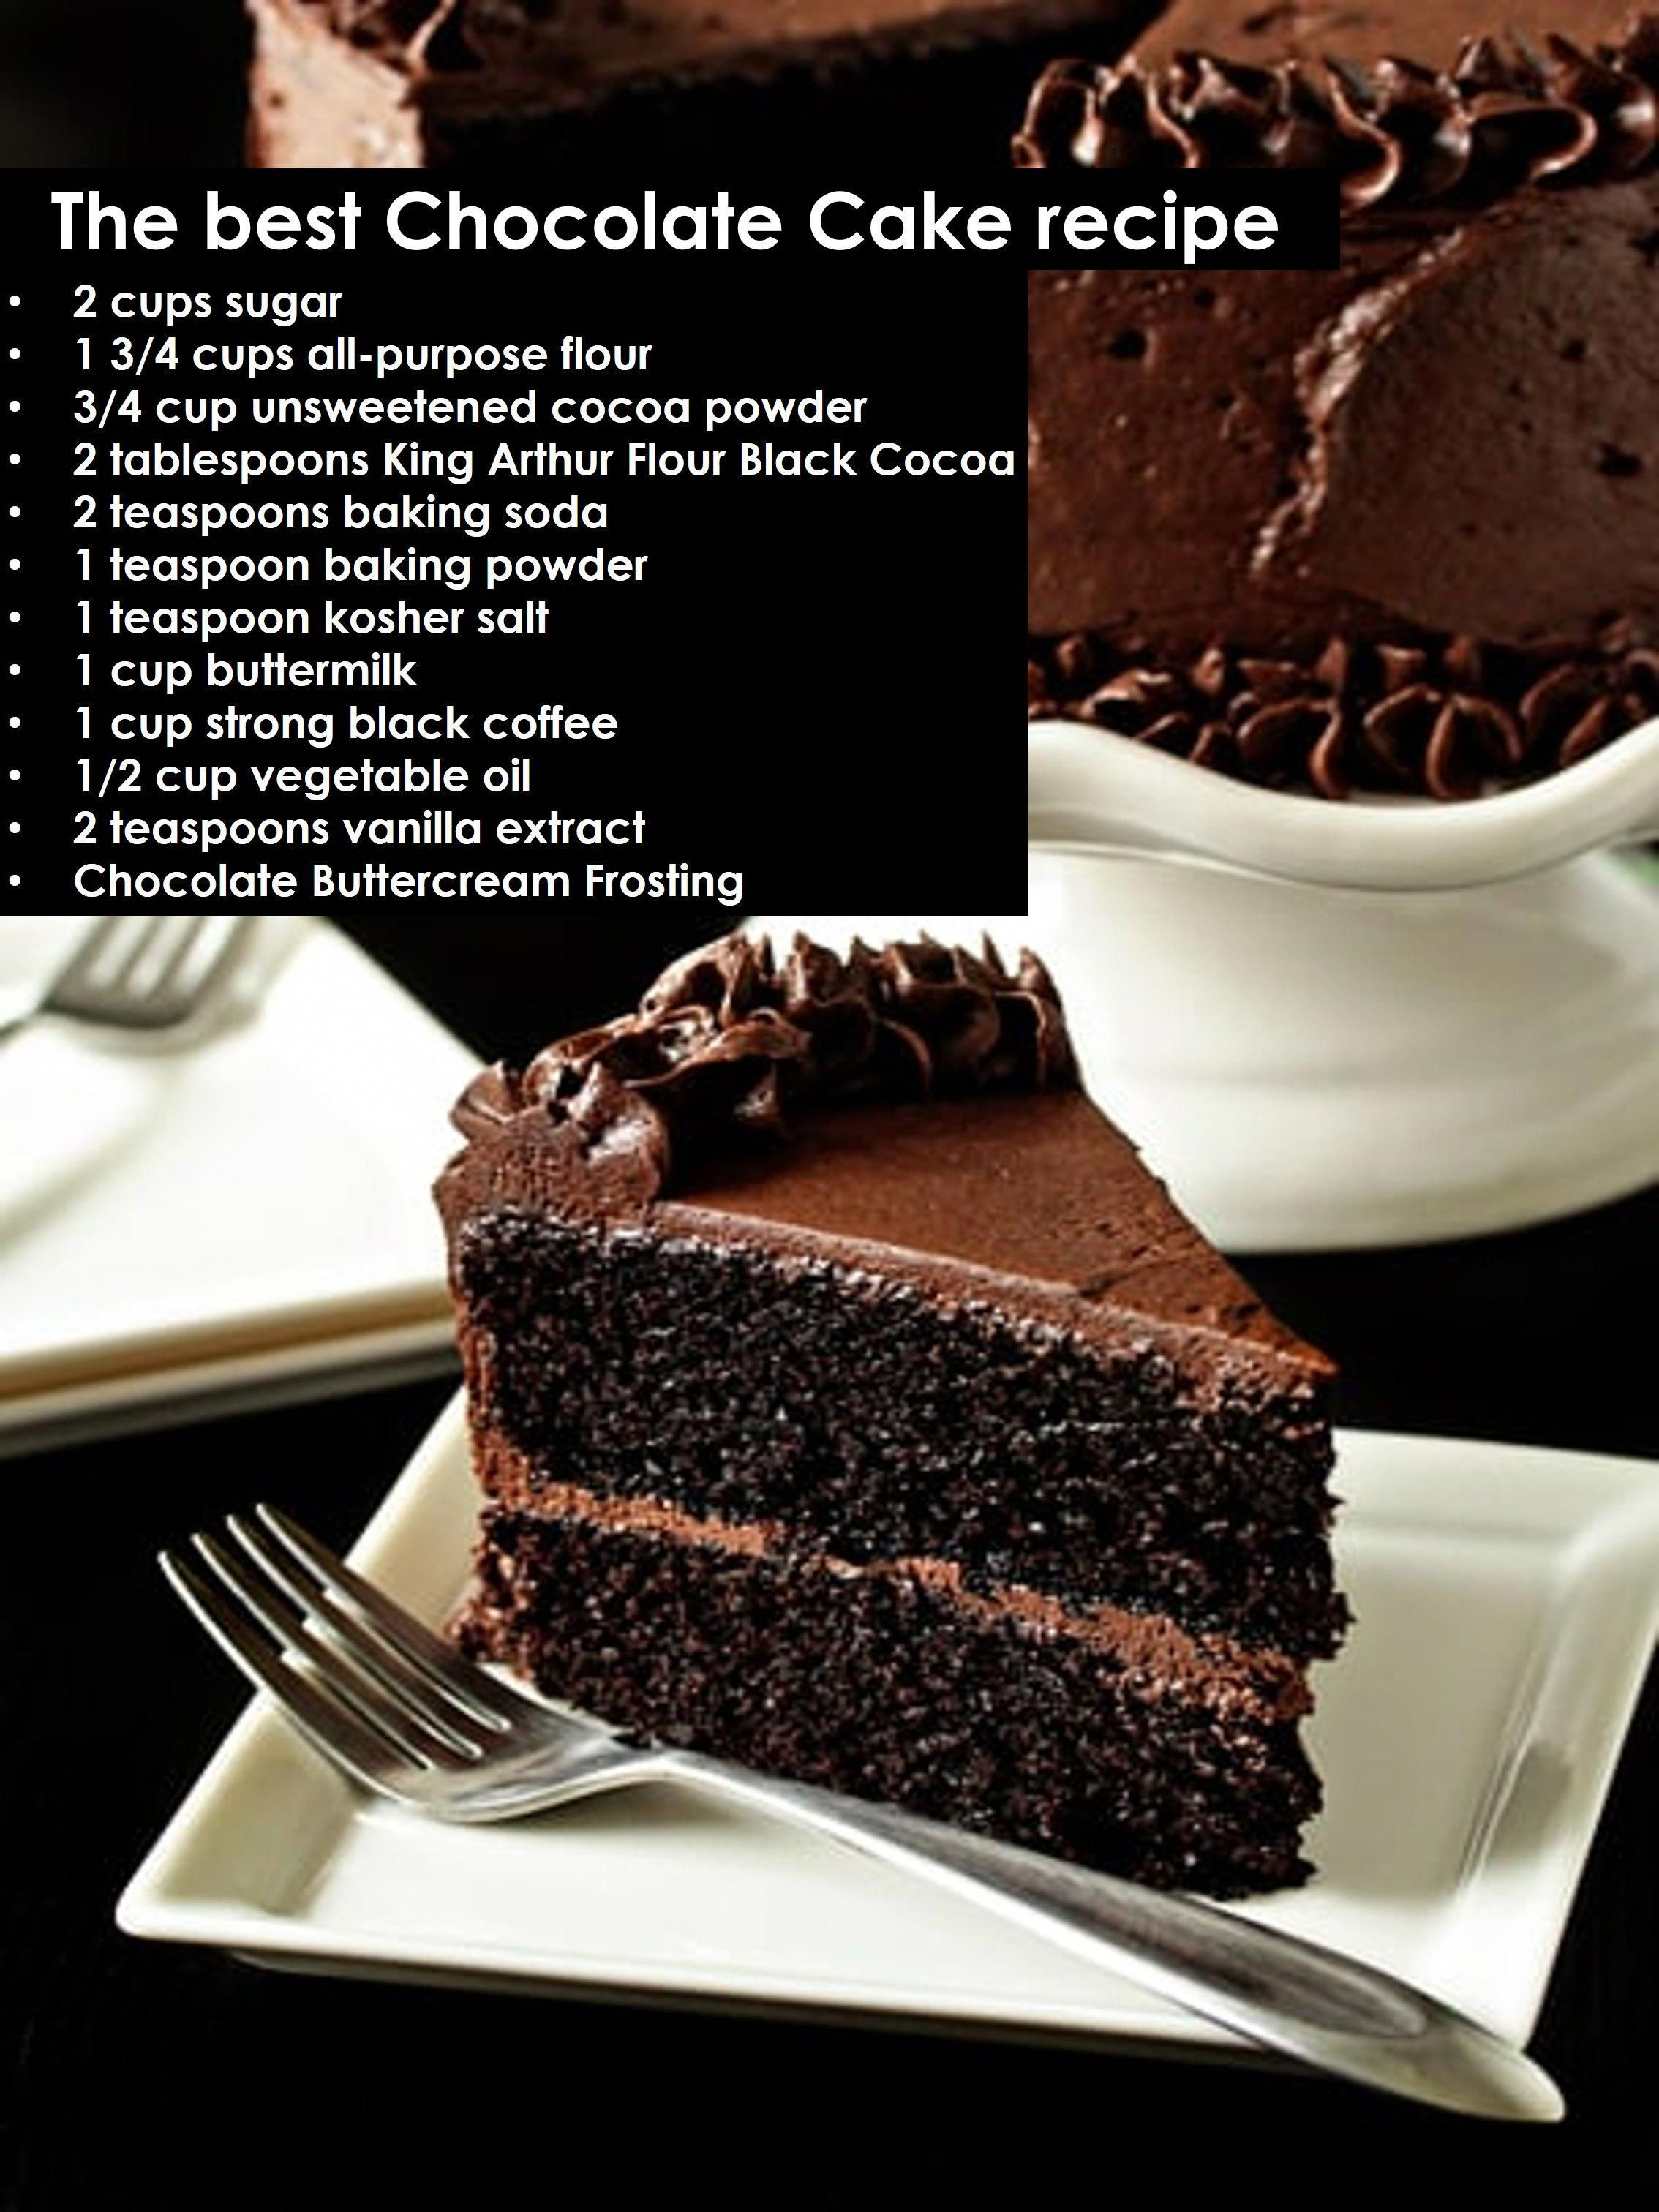 Pop Christmas Cakes Hq Recipes Recipe In 2020 Chocolate Cake Recipe Moist Amazing Chocolate Cake Recipe Chocolate Cake Recipe